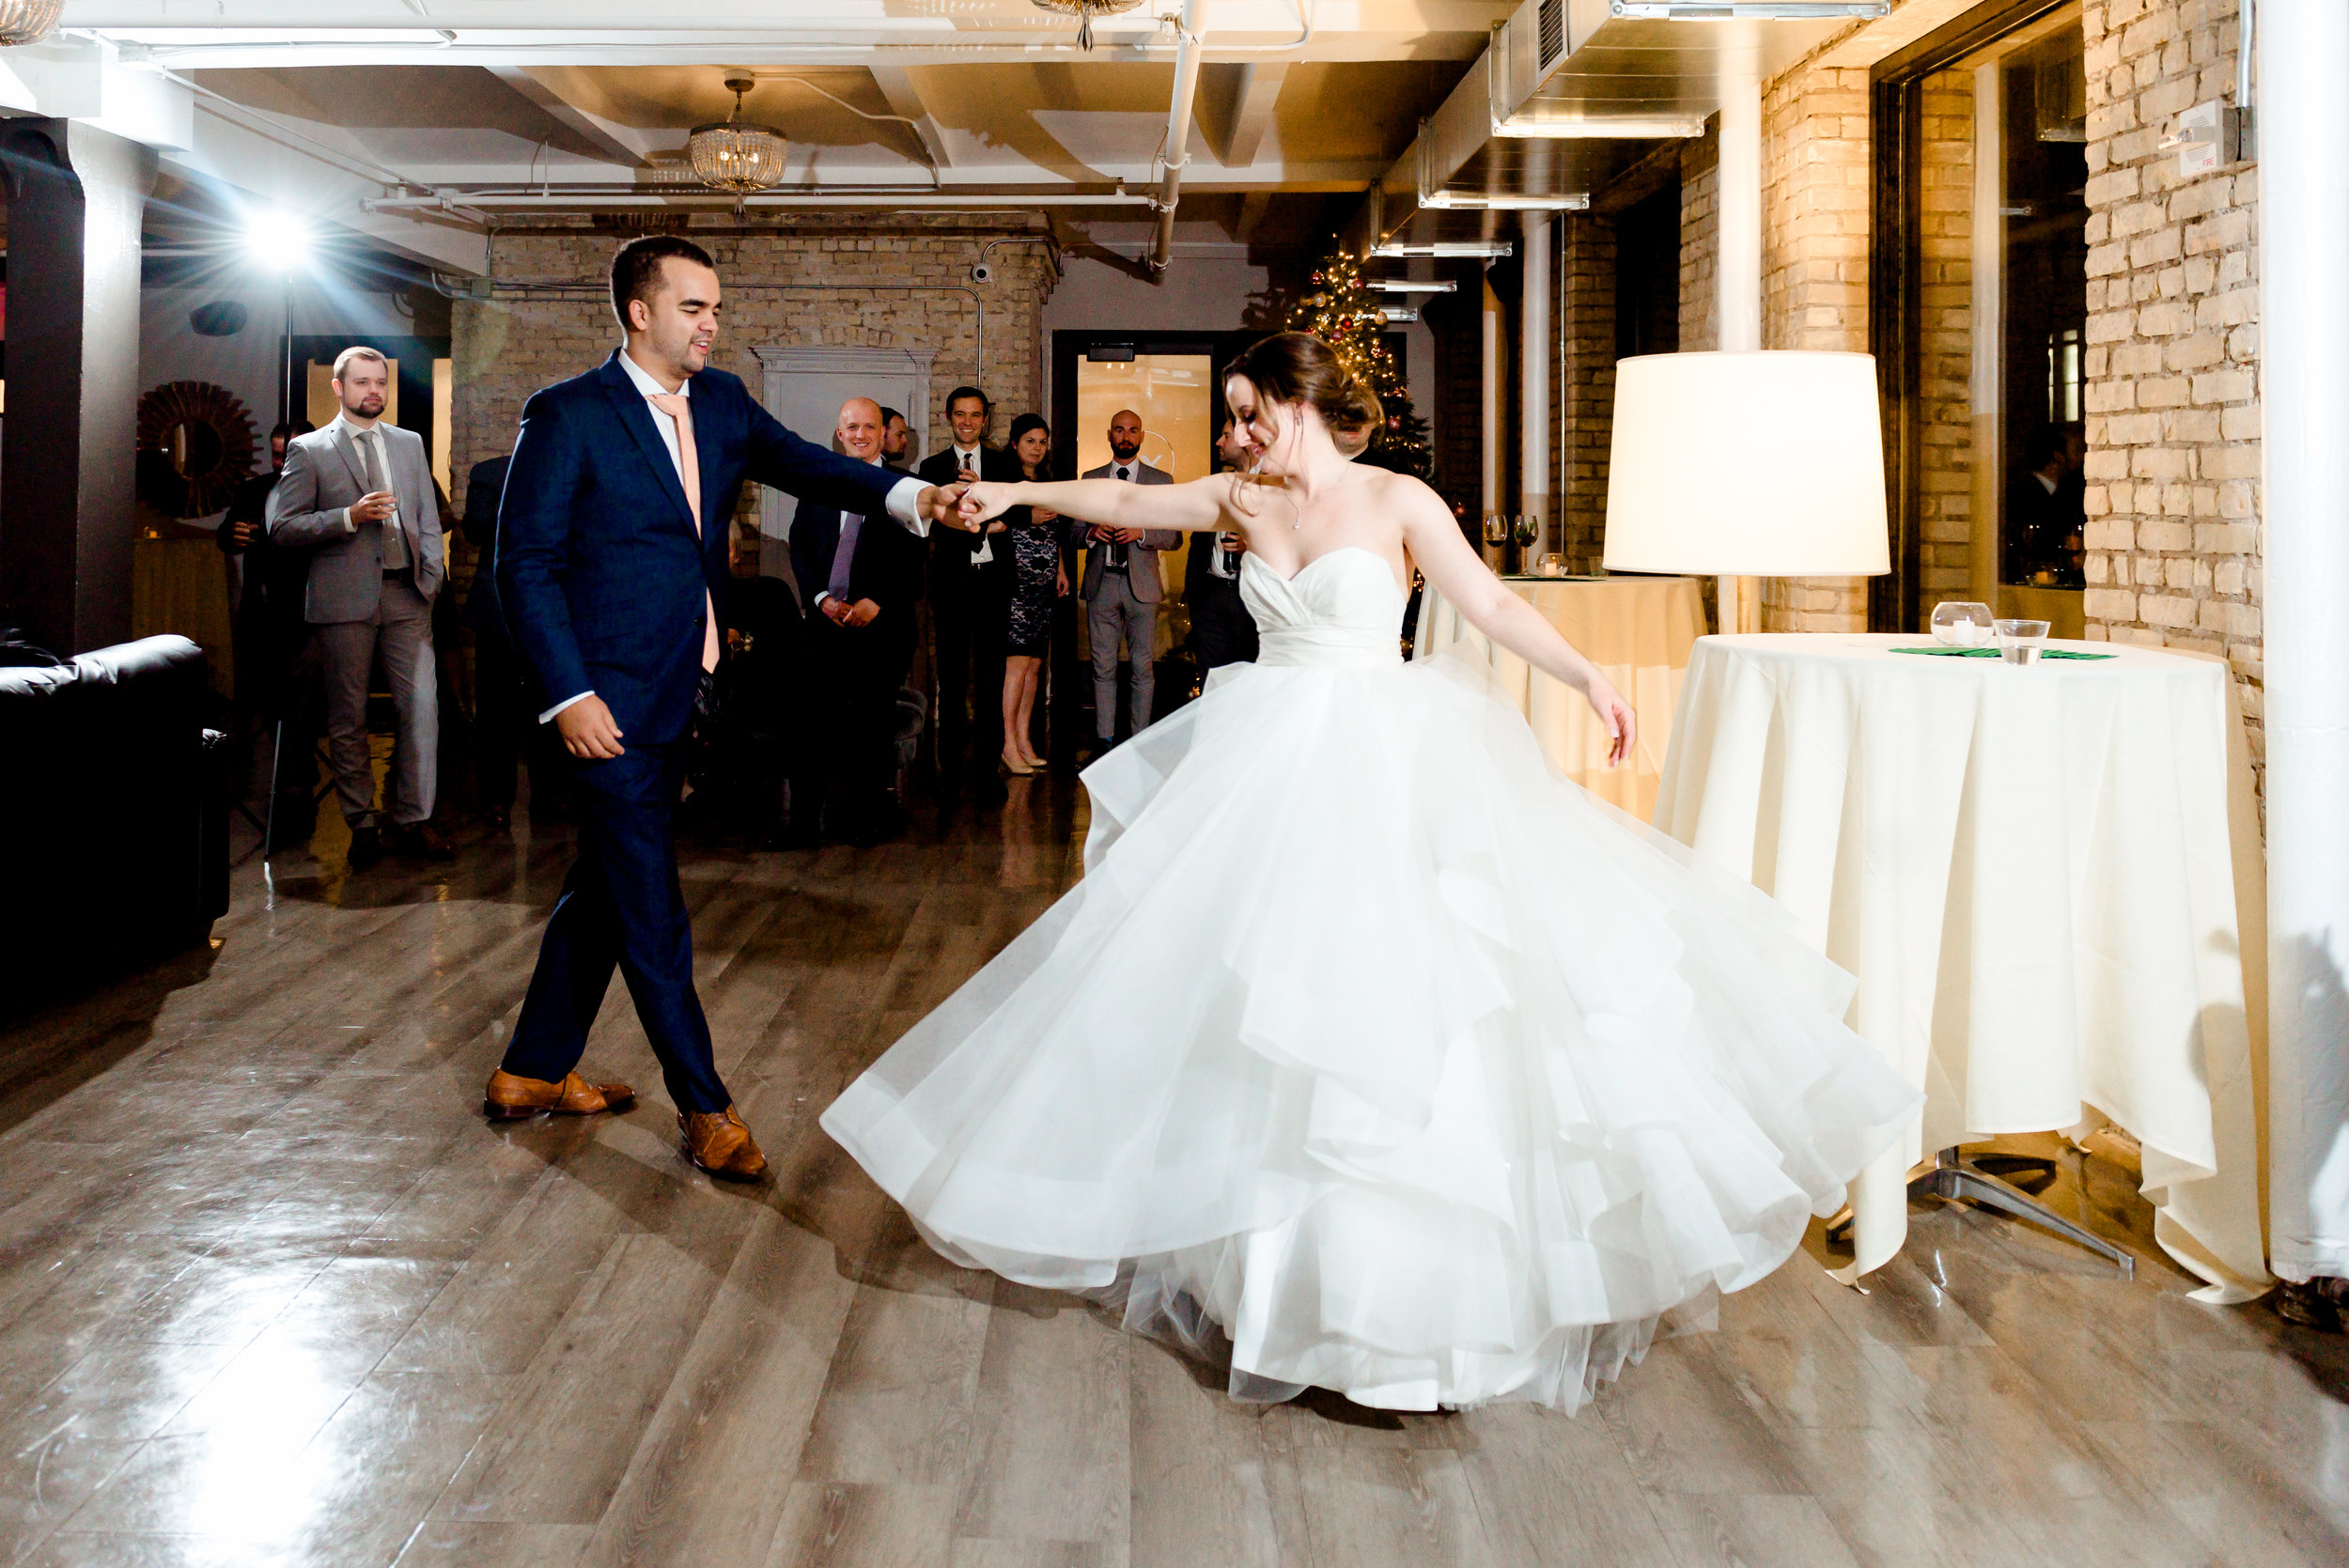 Megan and Alec - Lumber Exchange Wedding Sawyer Dylan Room - Highlights-283.jpg